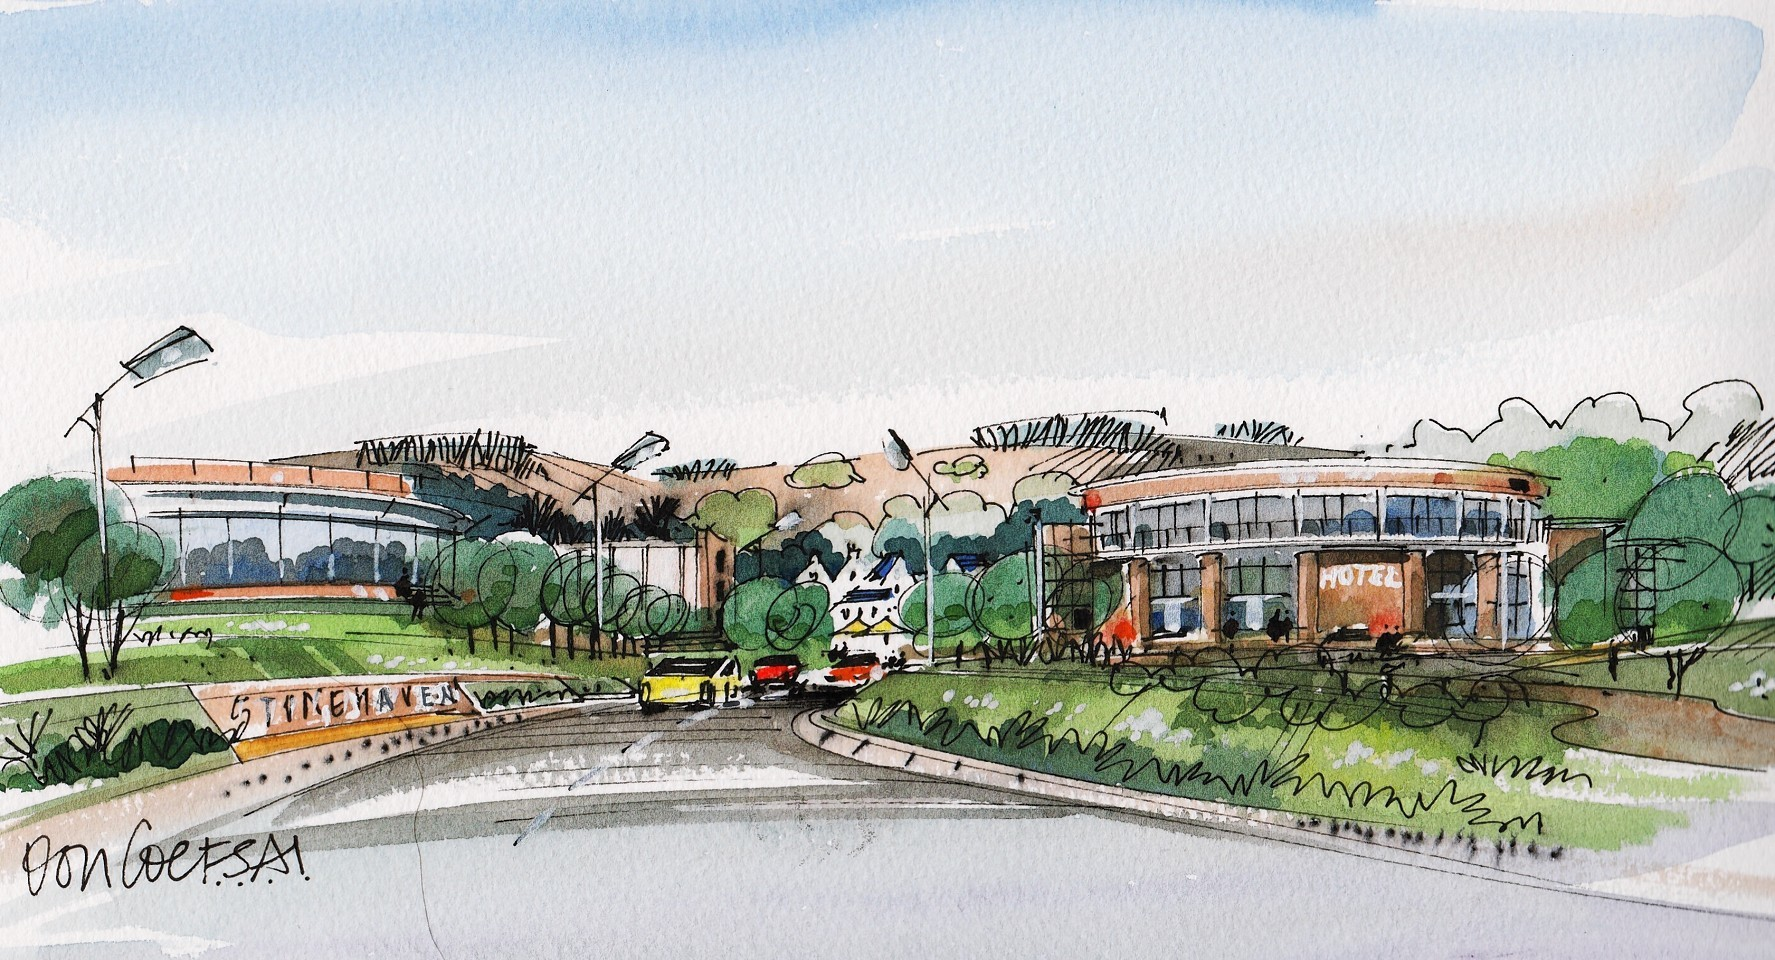 Artist impressions of Mill of Forest, Stonehaven